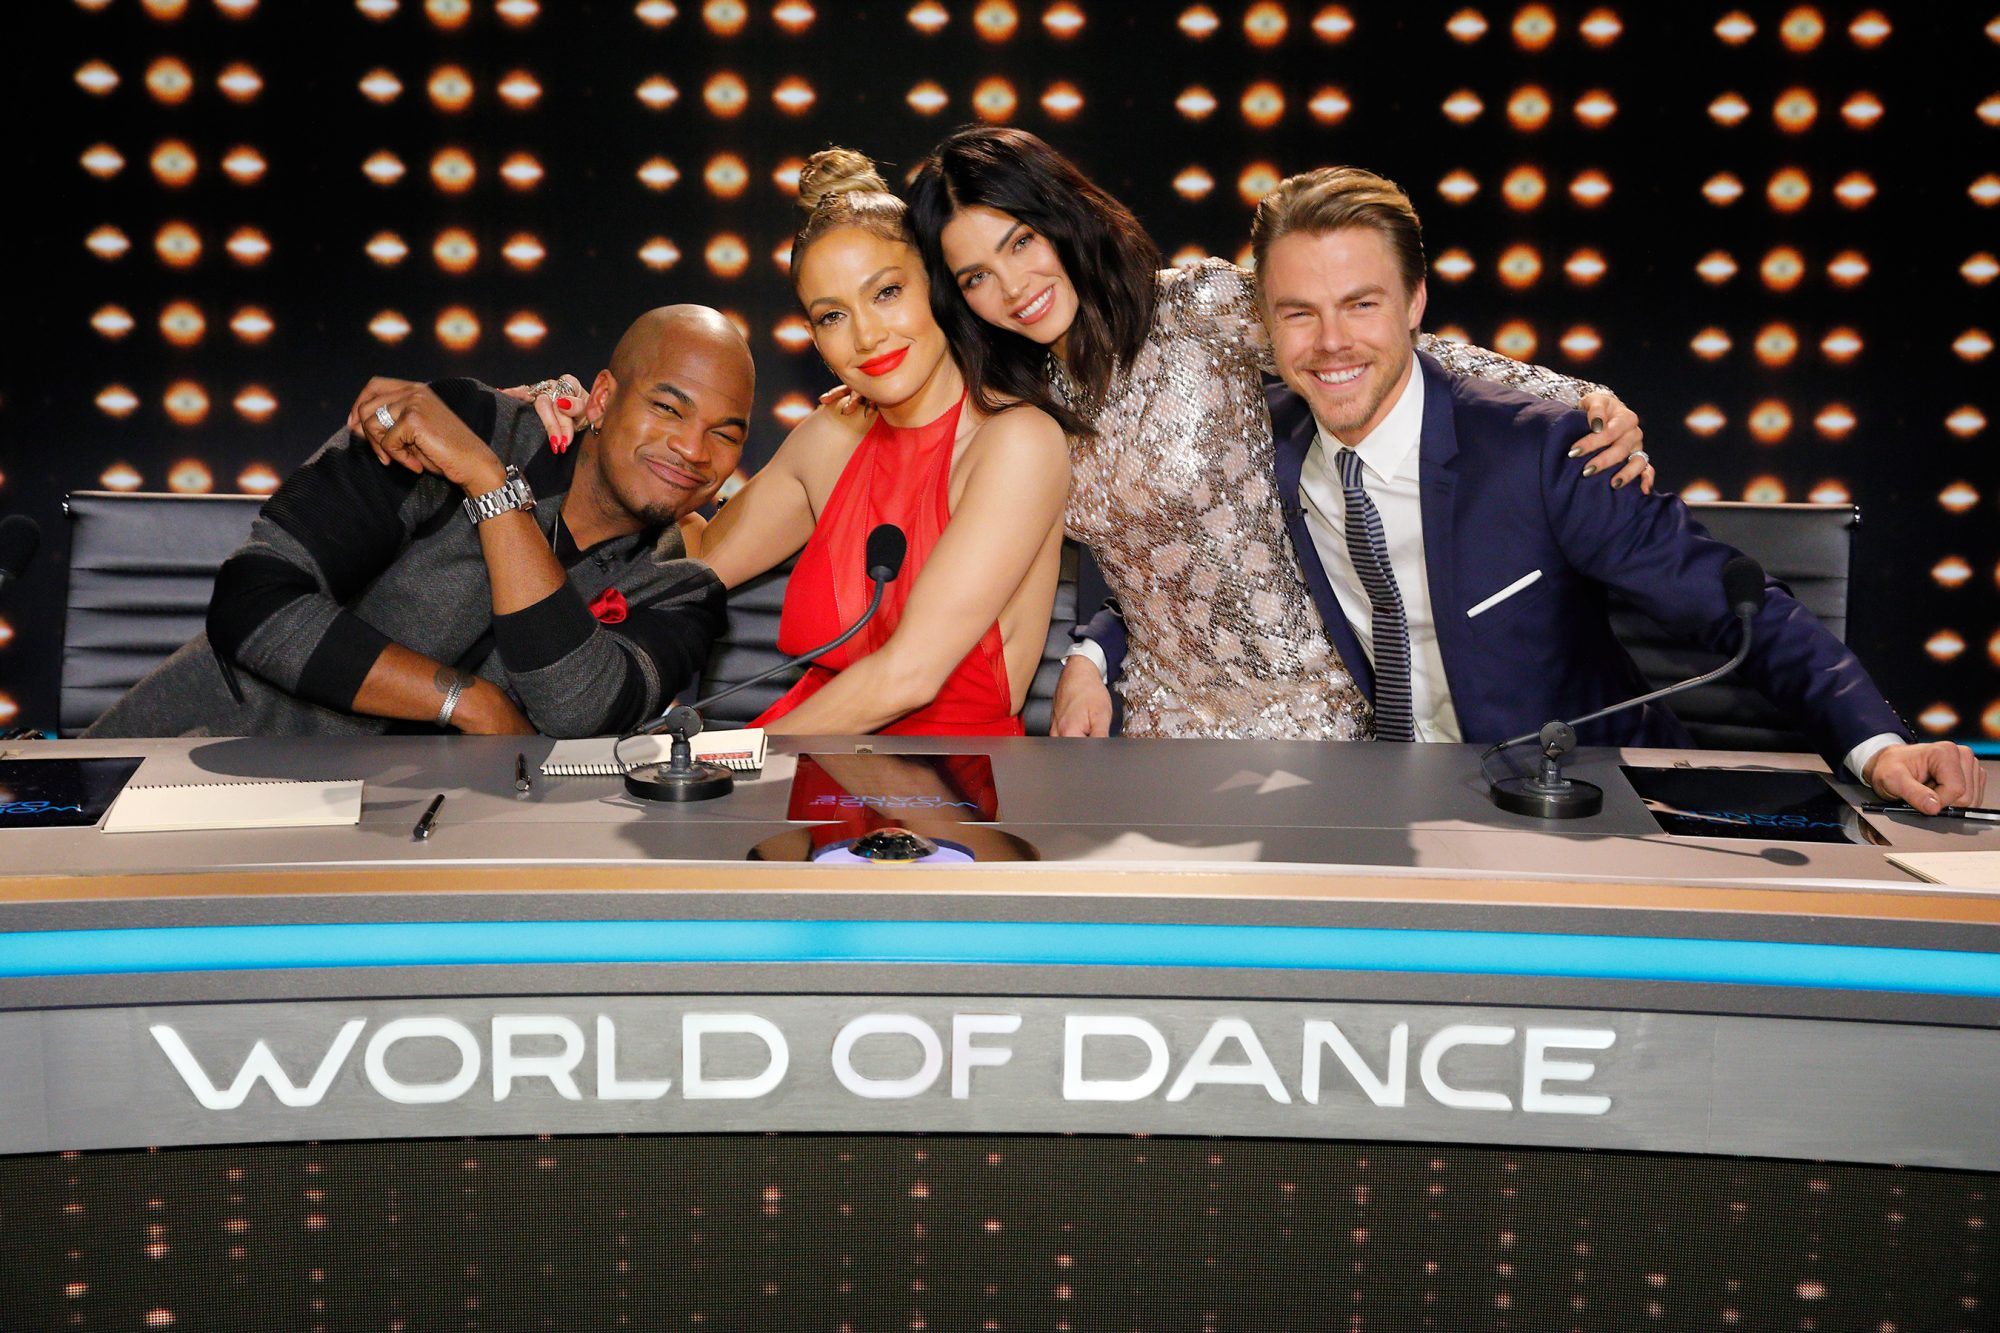 World of Dance - Season 1